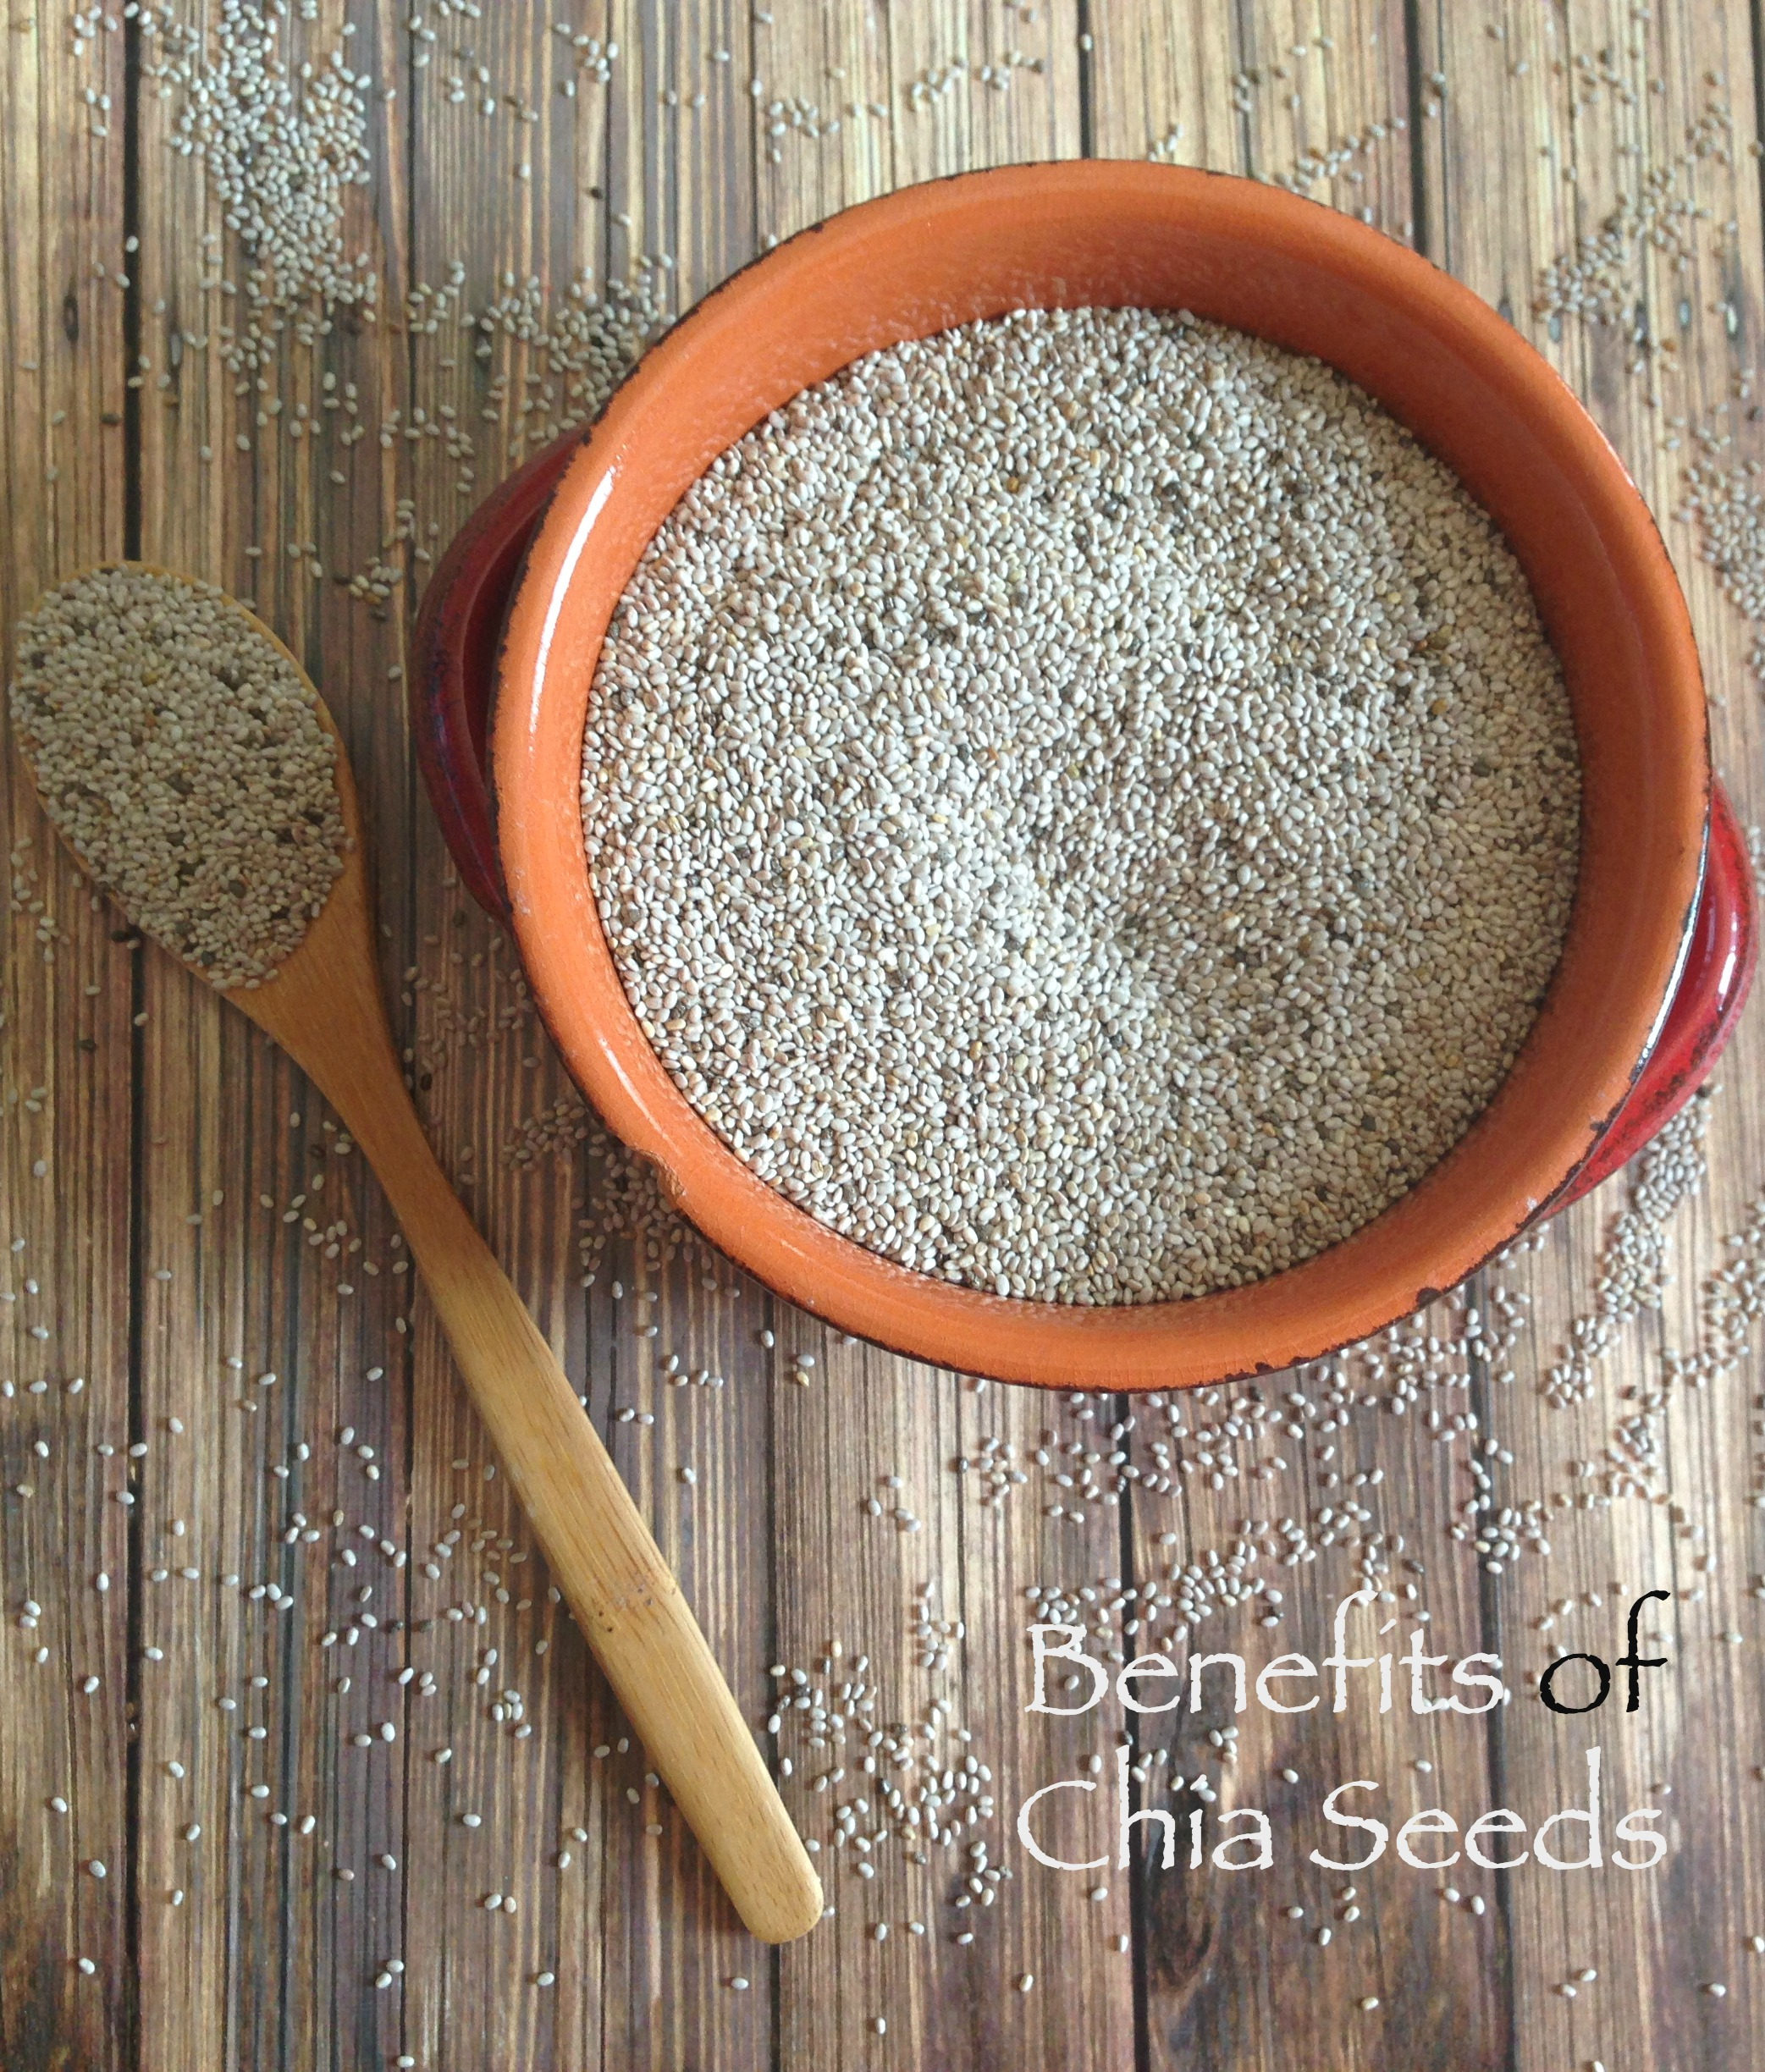 how to eat chia seeds benefits